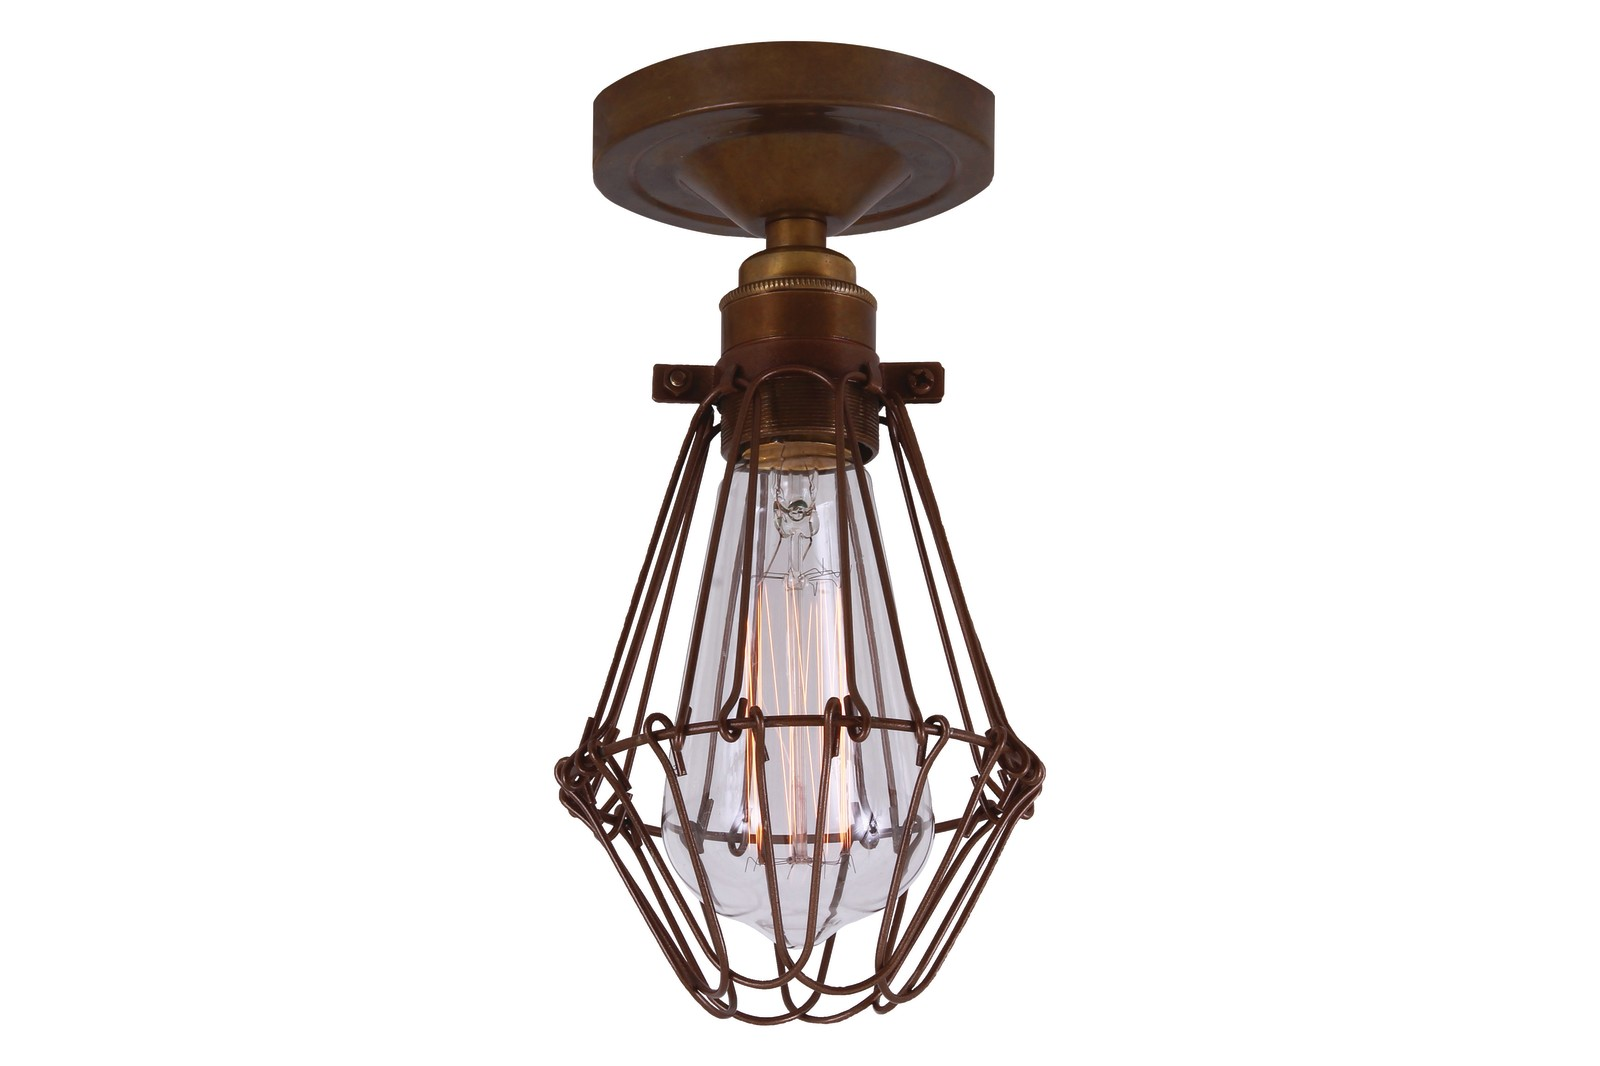 Aroch Ceiling Light Antique Brass